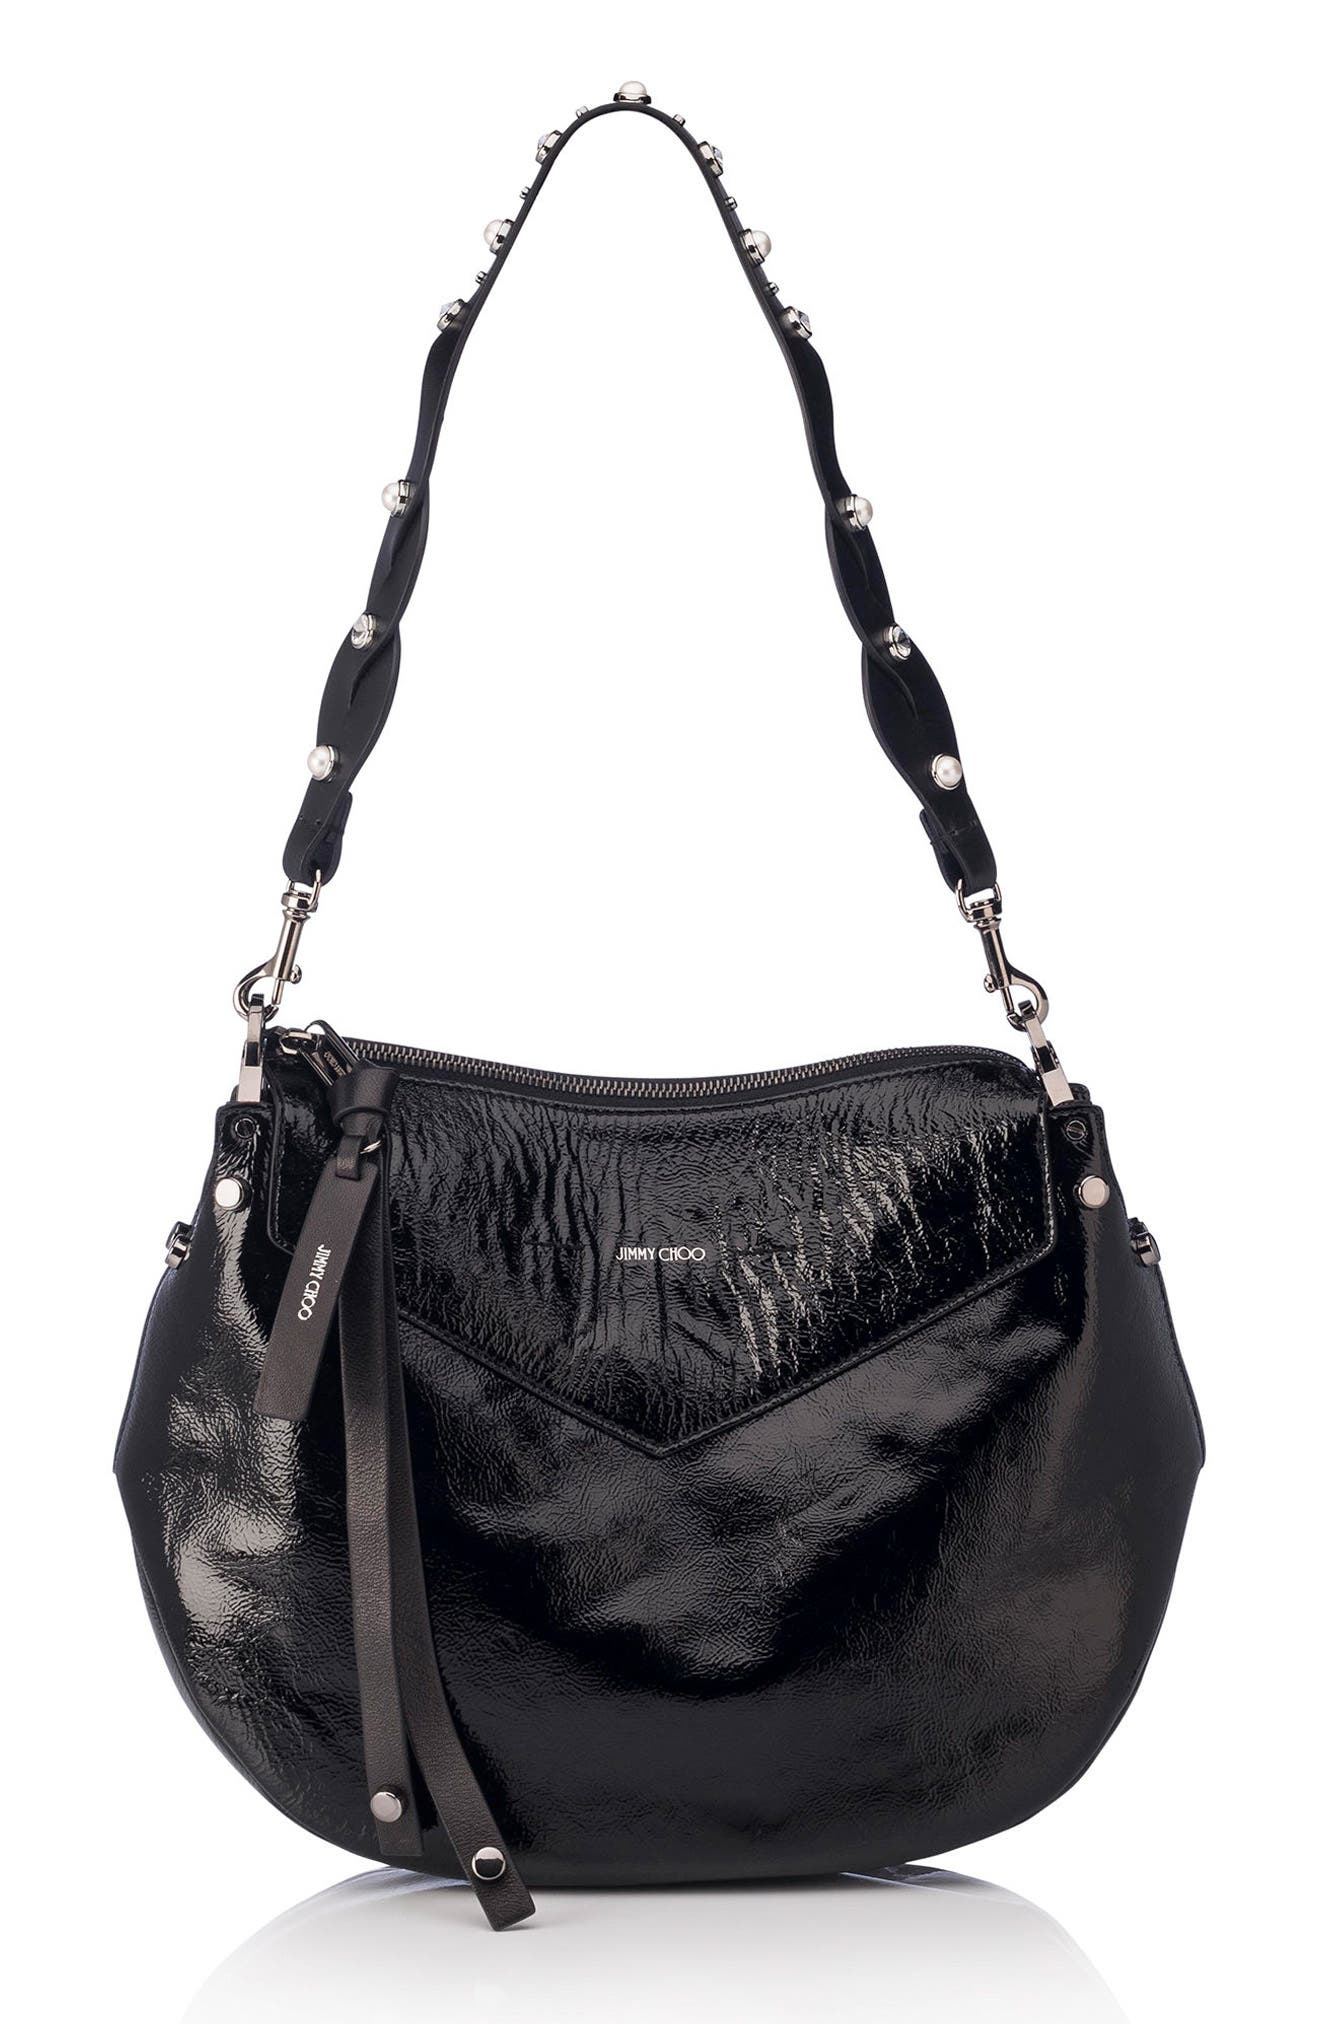 Jimmy Choo Artie Textured Leather Hobo